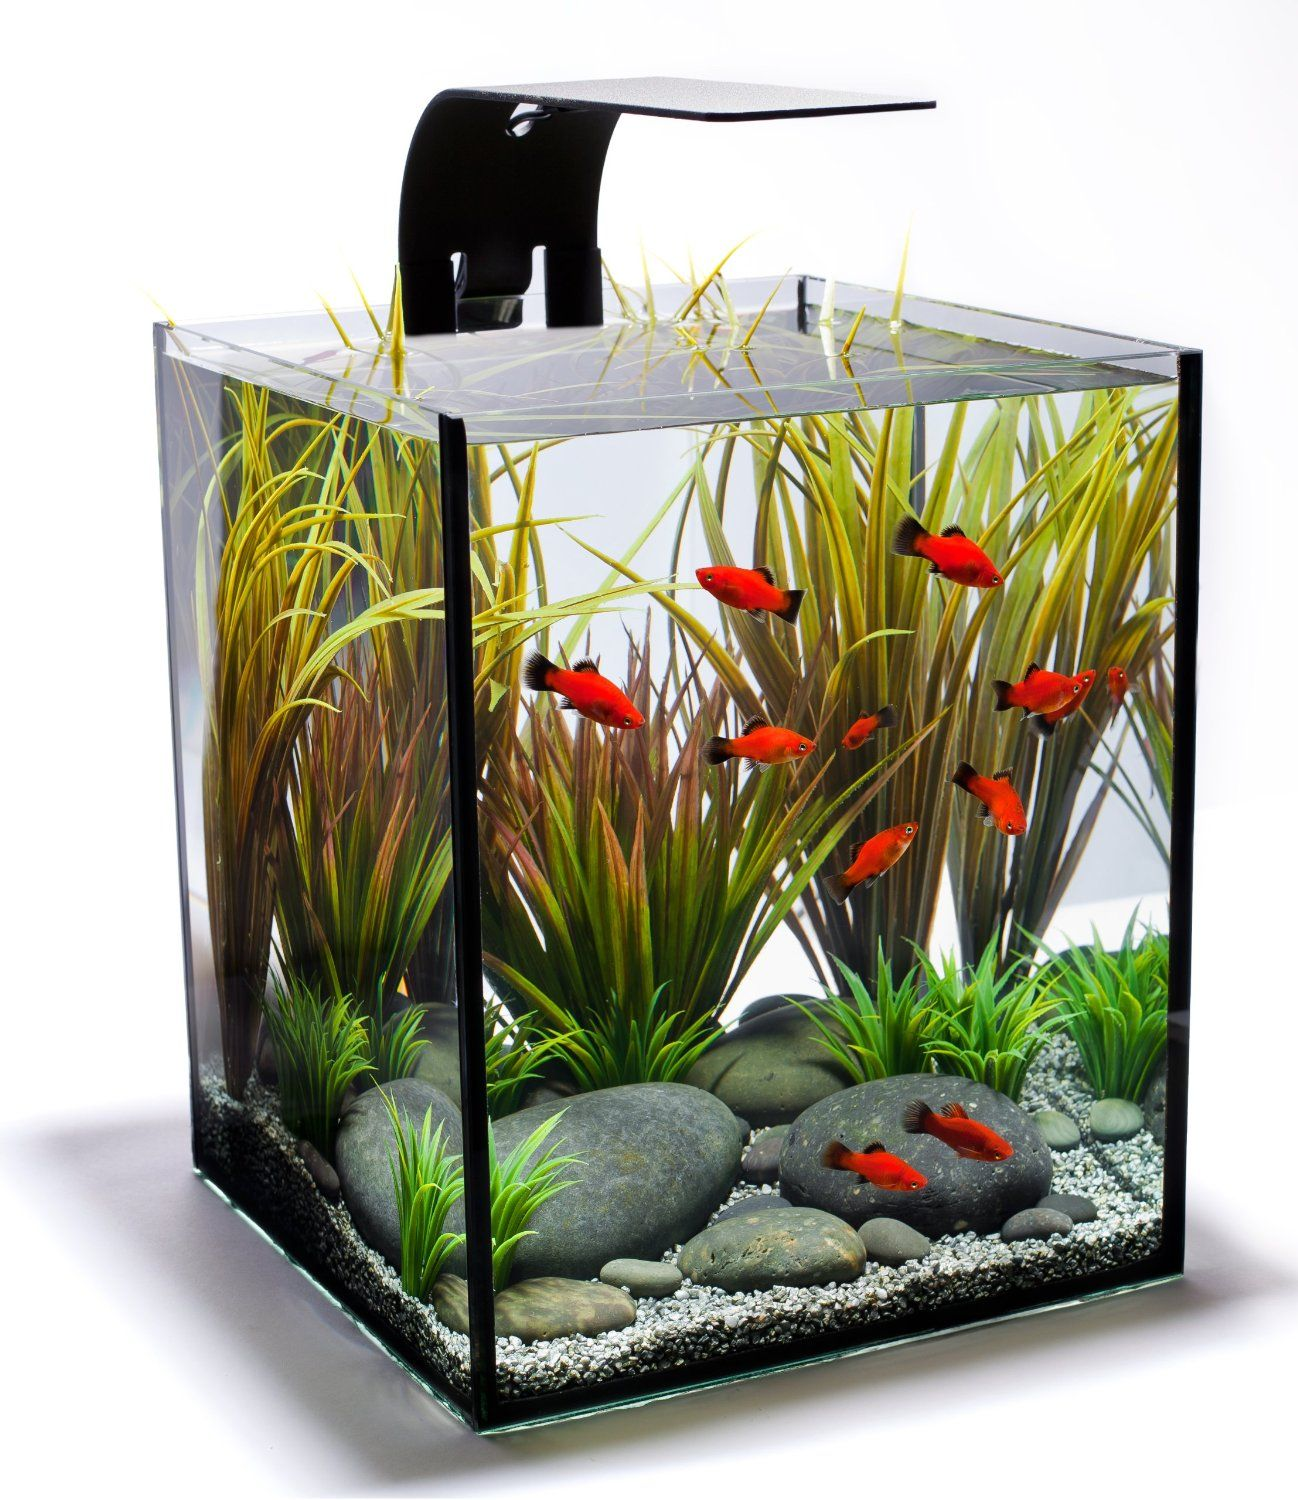 Fish aquarium is good in home - If You Love Nature And Would Like To Include Aspects Of It In Your Home Then You Shhould Consider Acquiring A Fish Tank Aquariams Are Stylish And